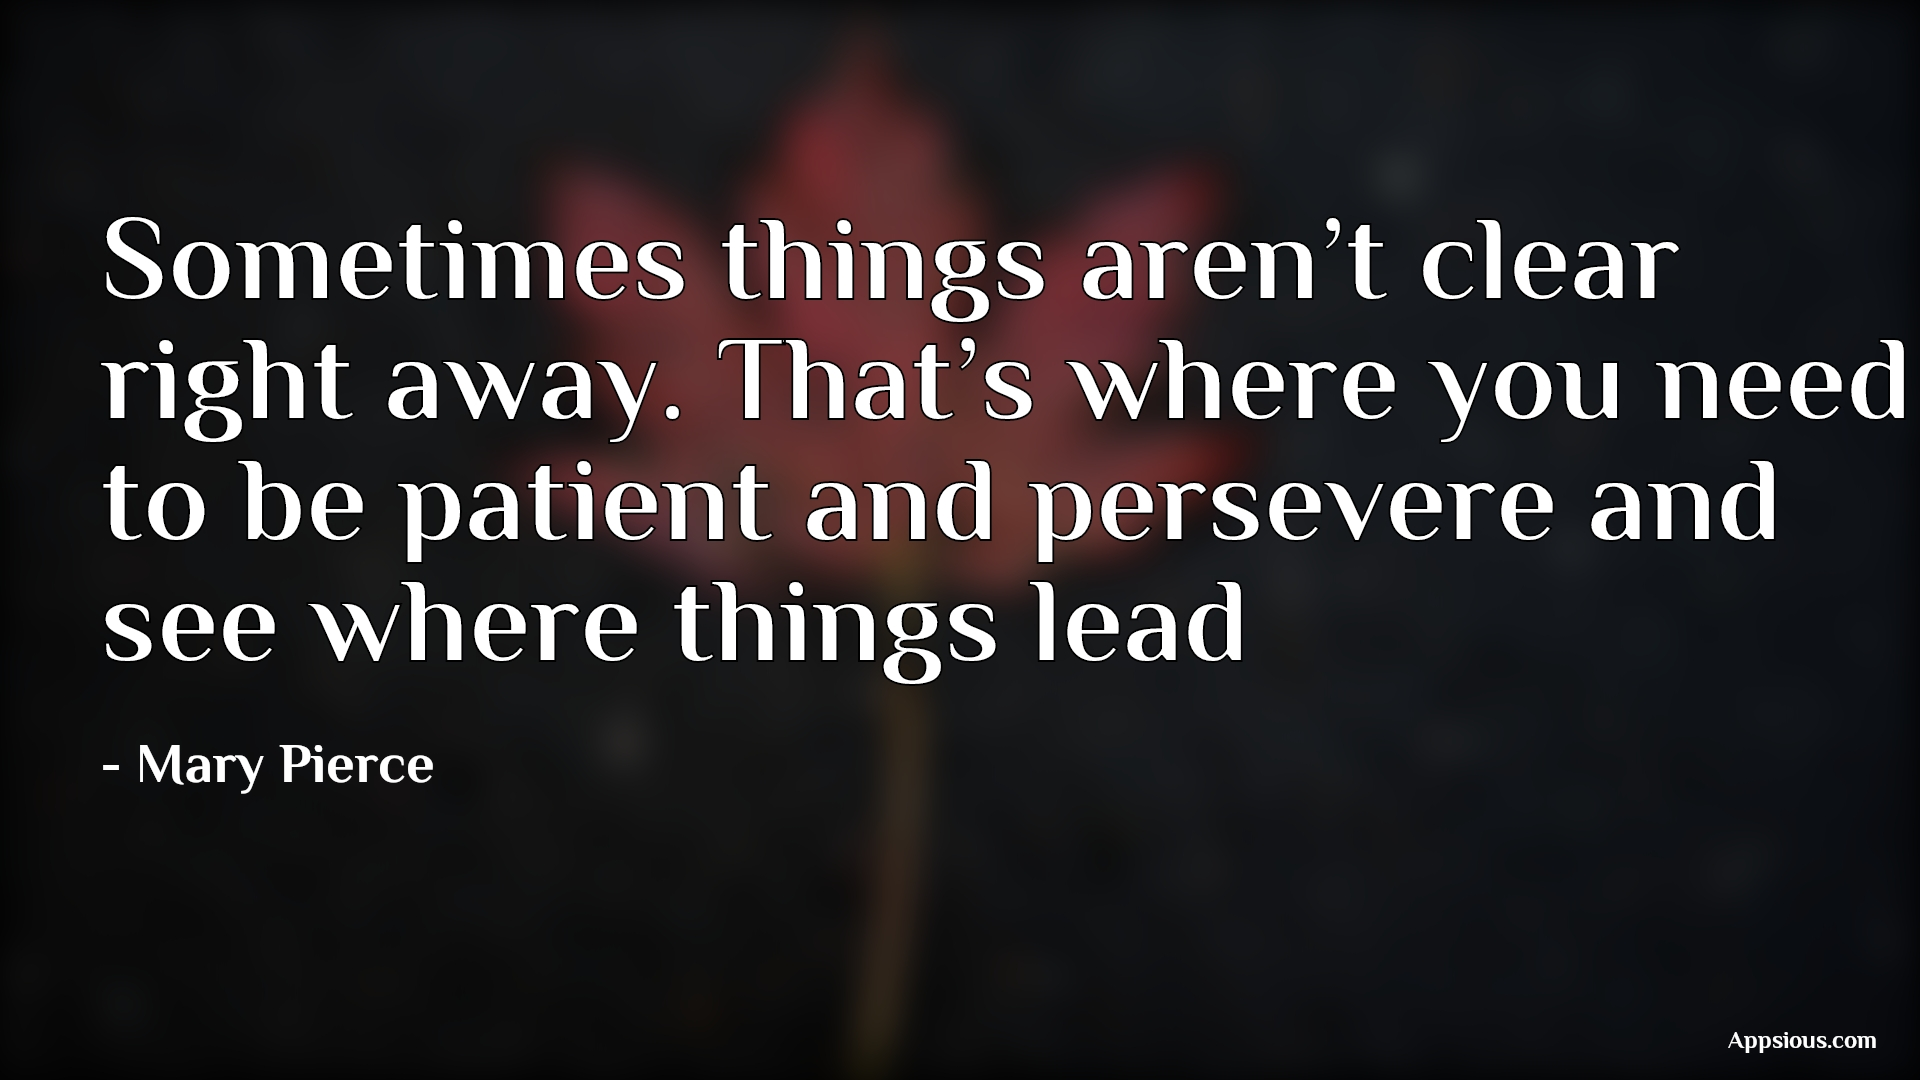 Sometimes things aren't clear right away. That's where you need to be patient and persevere and see where things lead